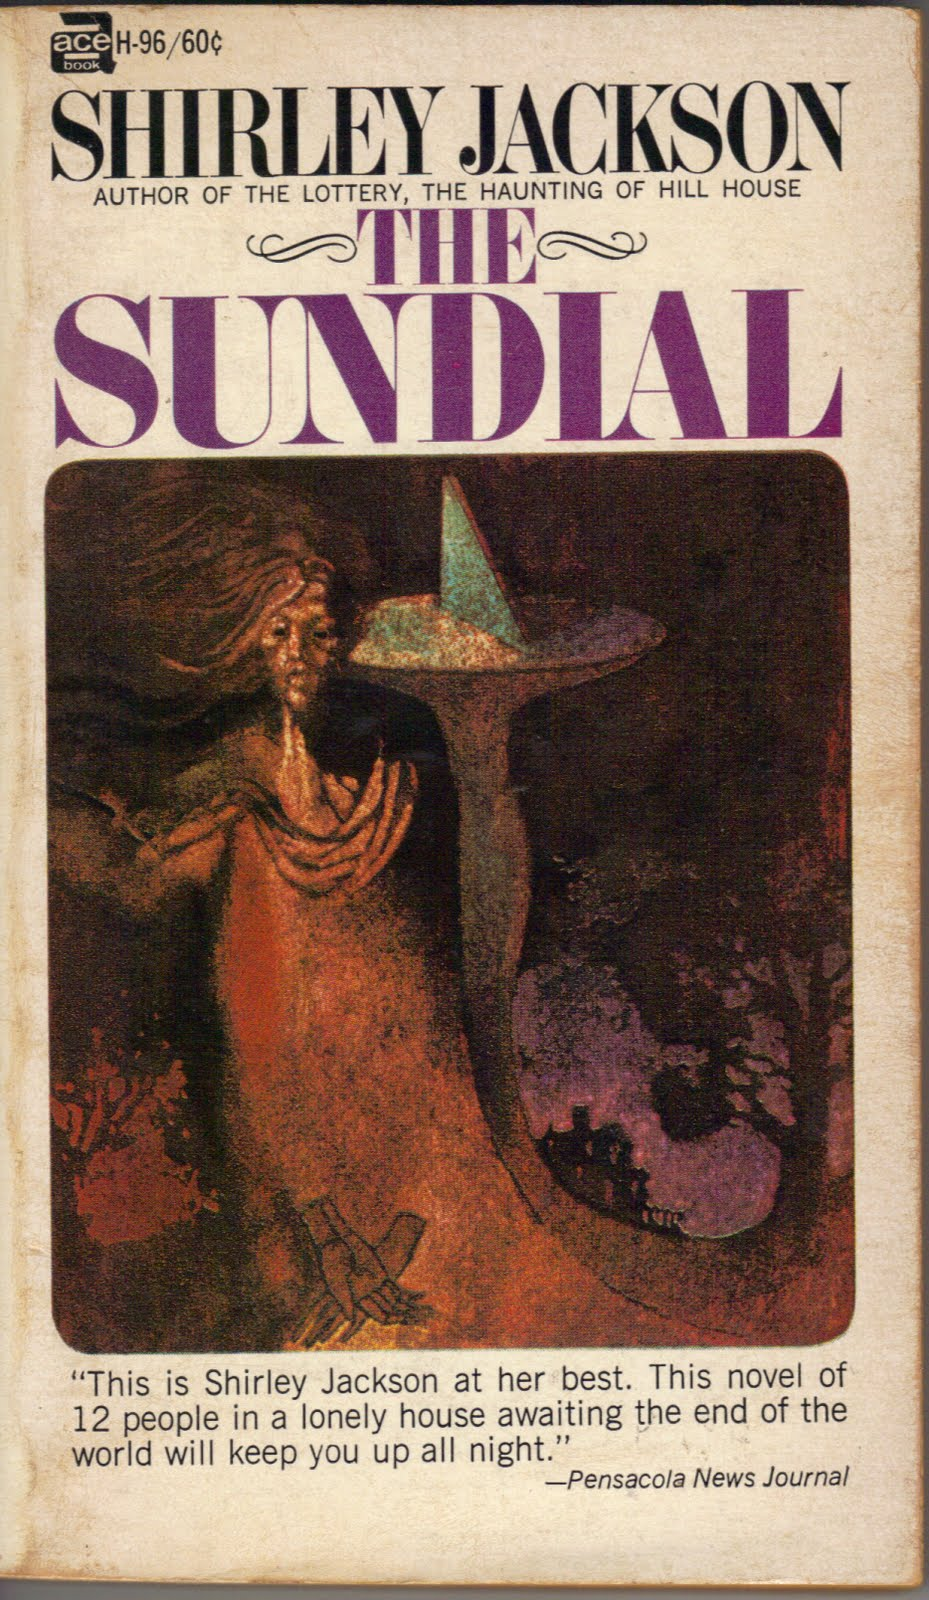 Image result for the sundial shirley jackson